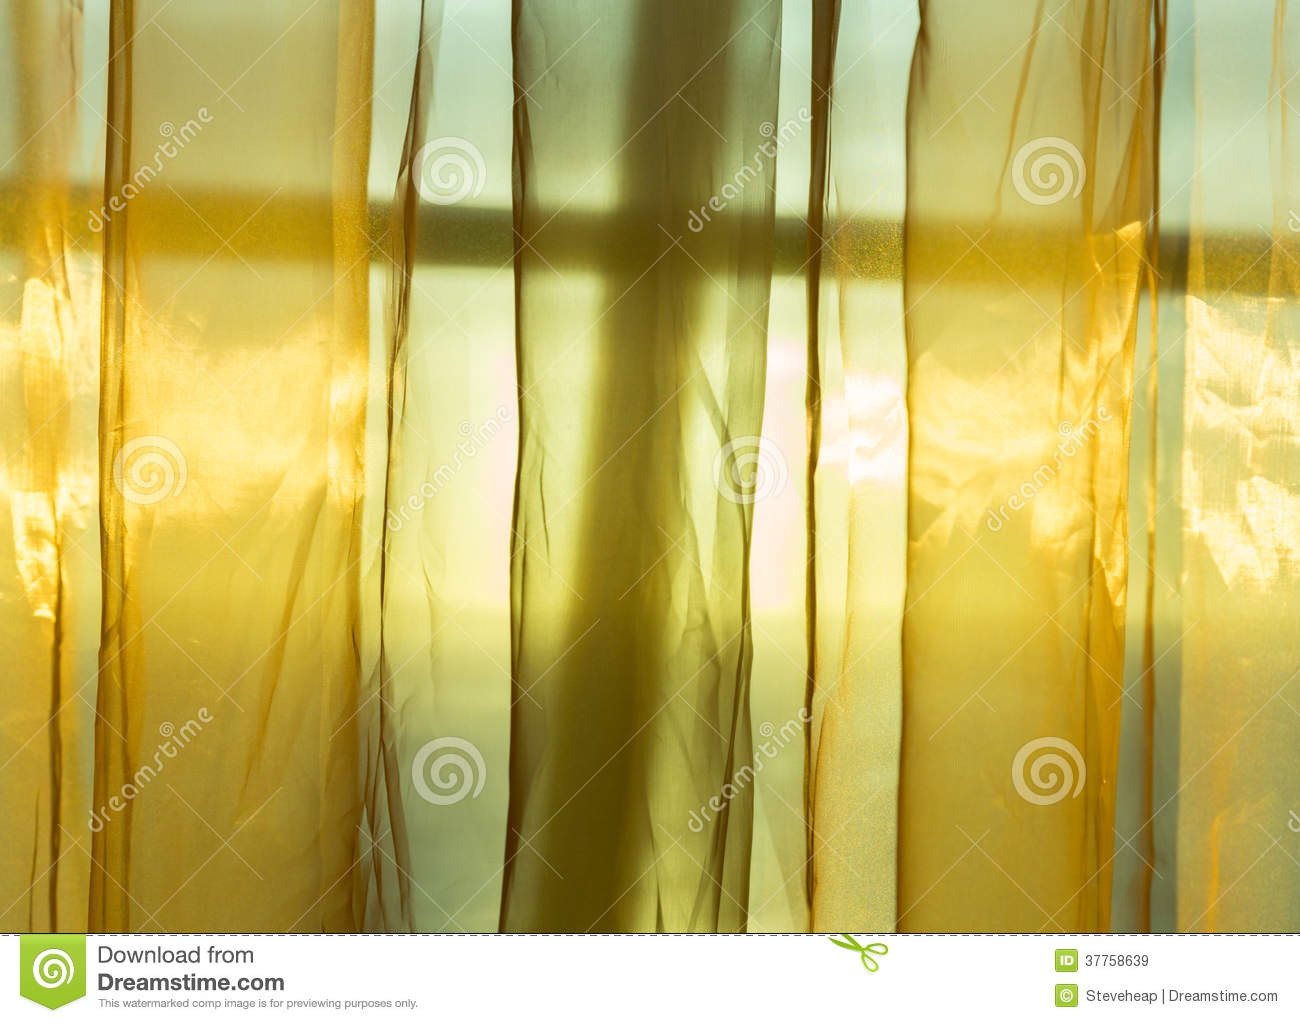 Image Result For Silk Curtains Texture